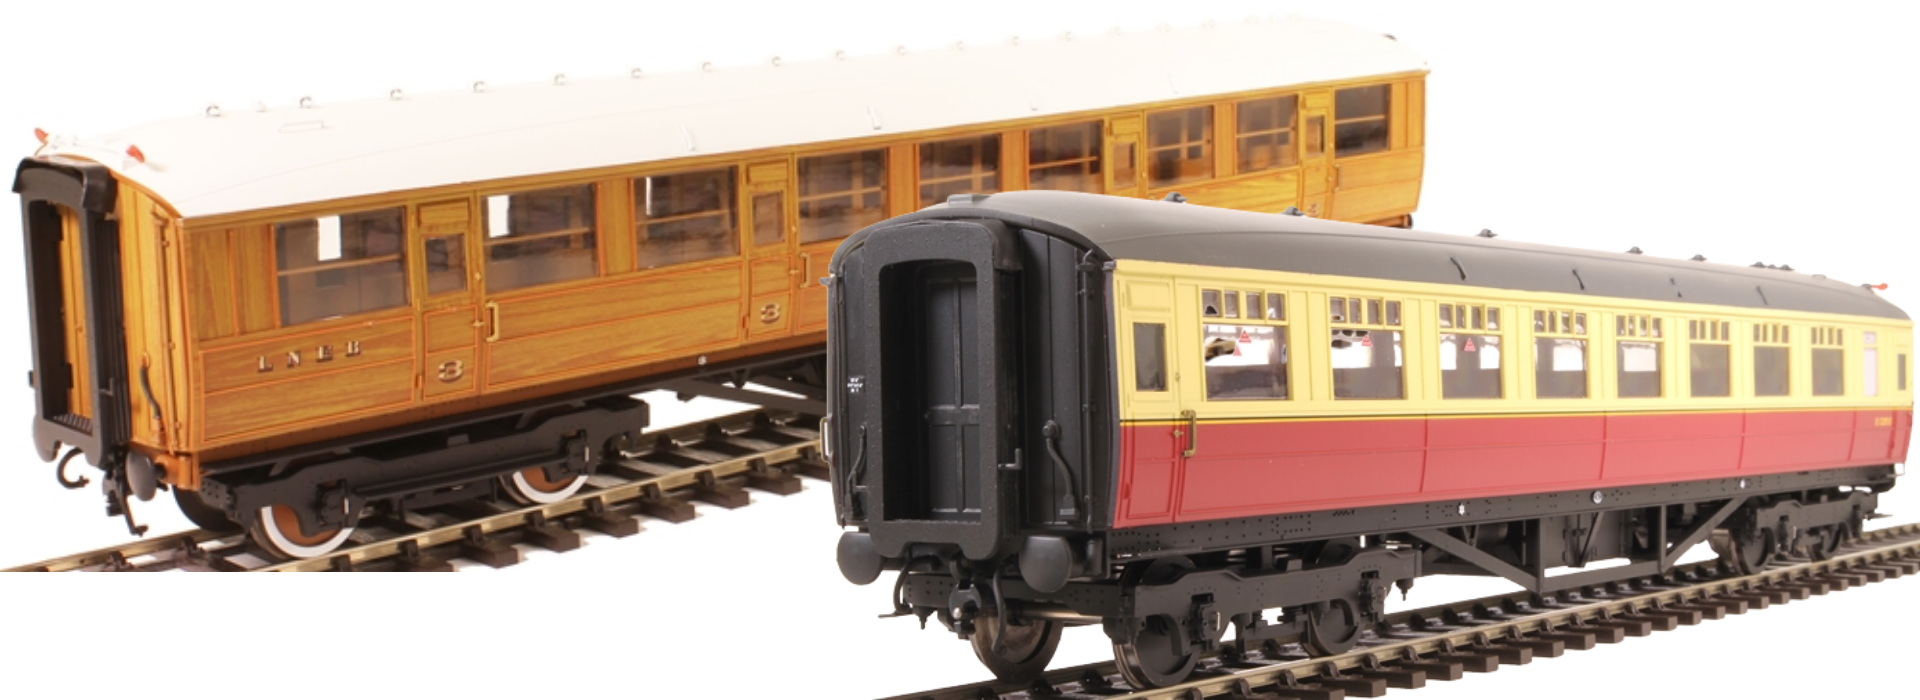 A group photo of three Hattons LNER teak coaches in BR carmine & cream and BR maroon liveries